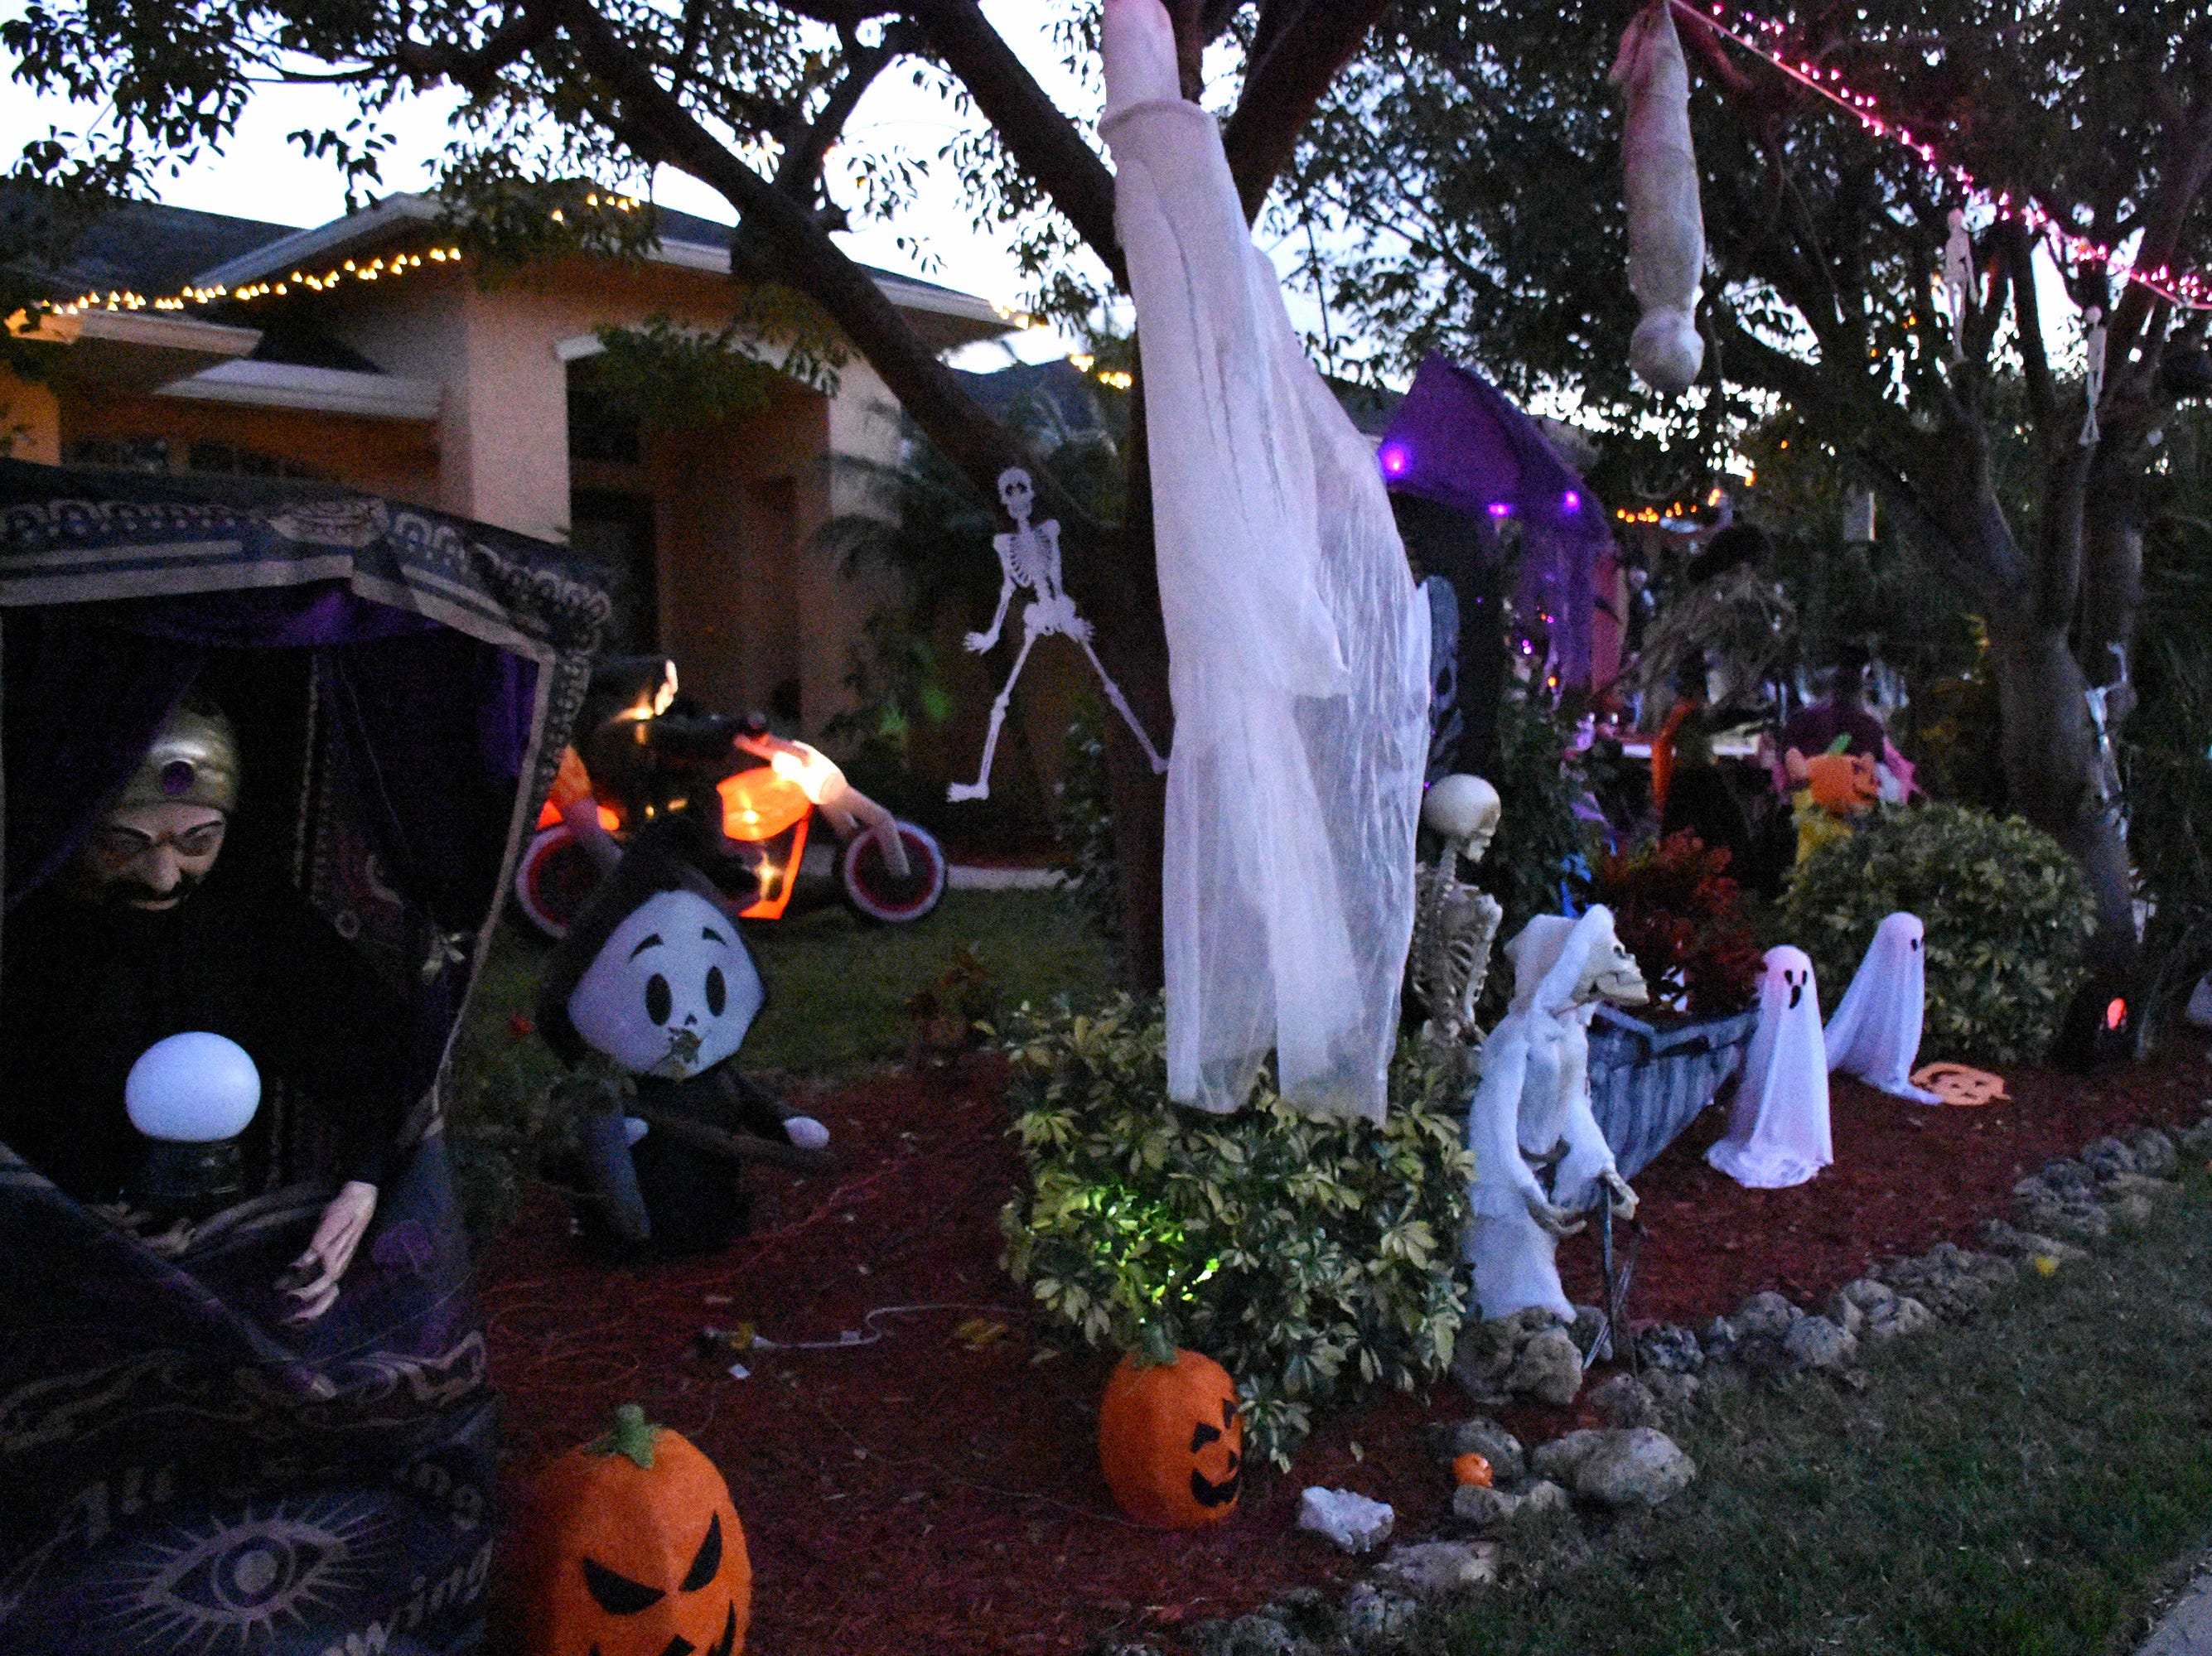 Some homeowners go all-out in decorating. Wednesday evening, in a decades-old tradition, the streets around Tommie Barfield Elementary turned into a trick or treatin' block party.